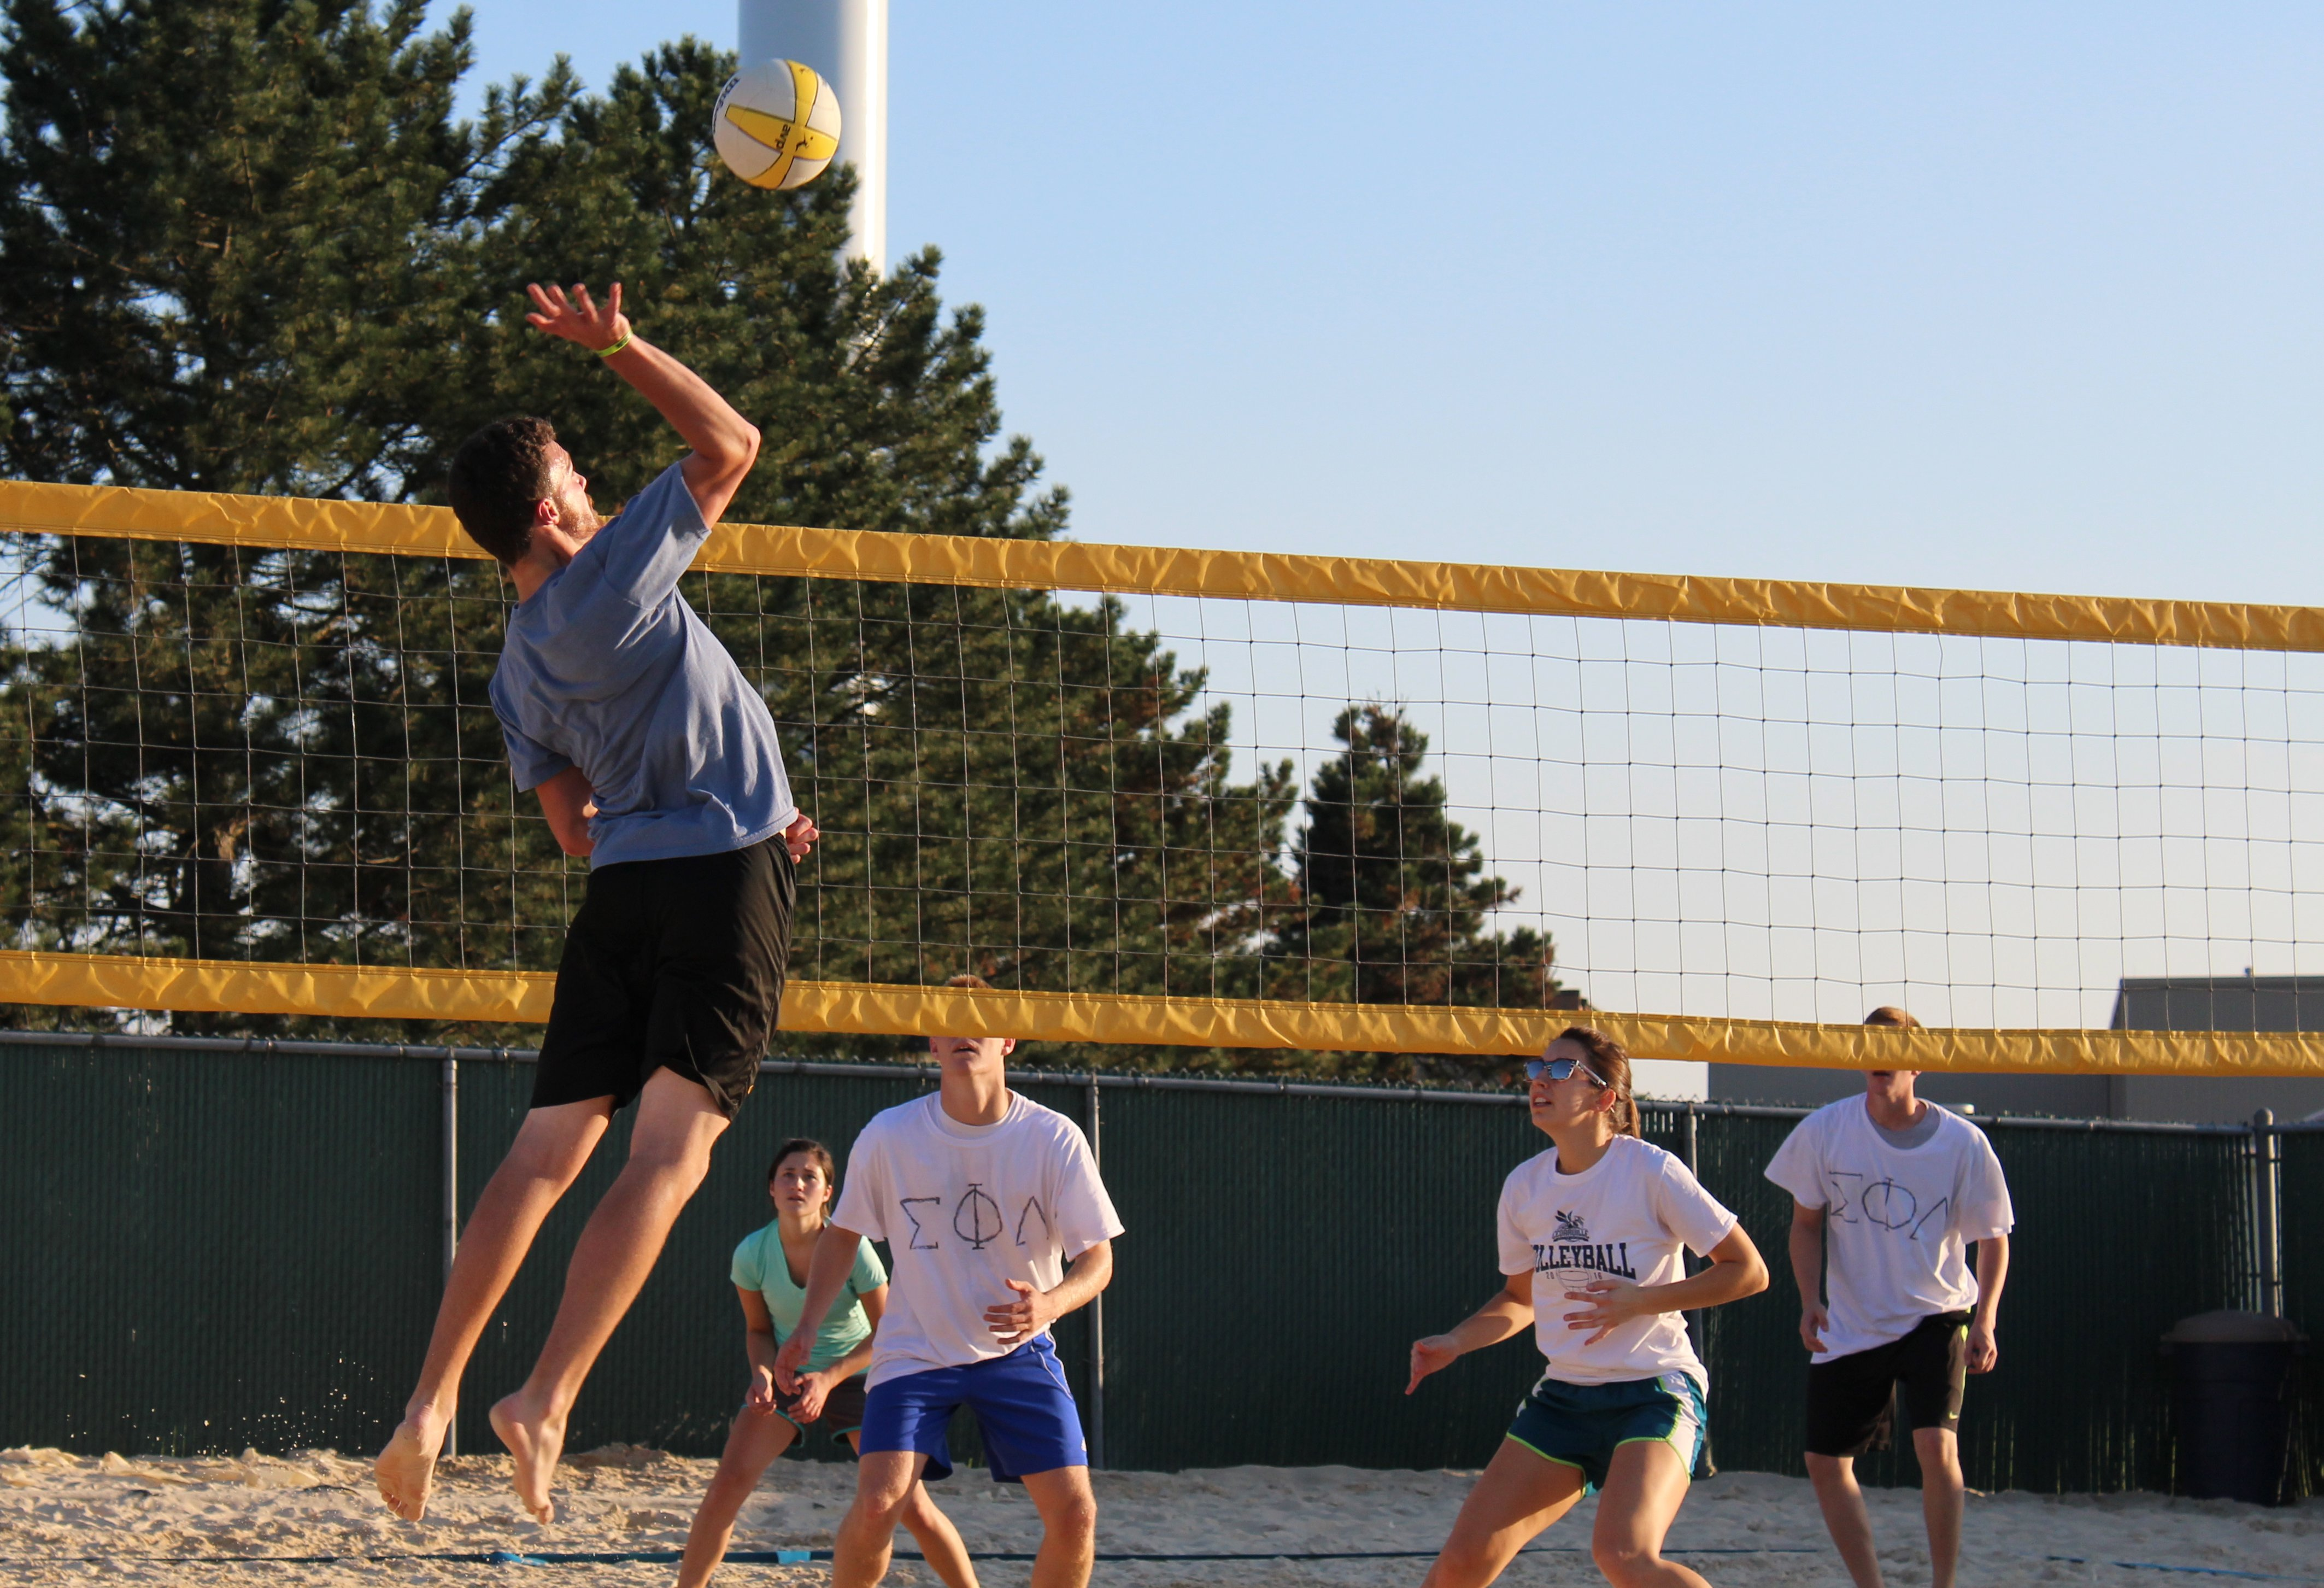 Students participate in sand volleyball